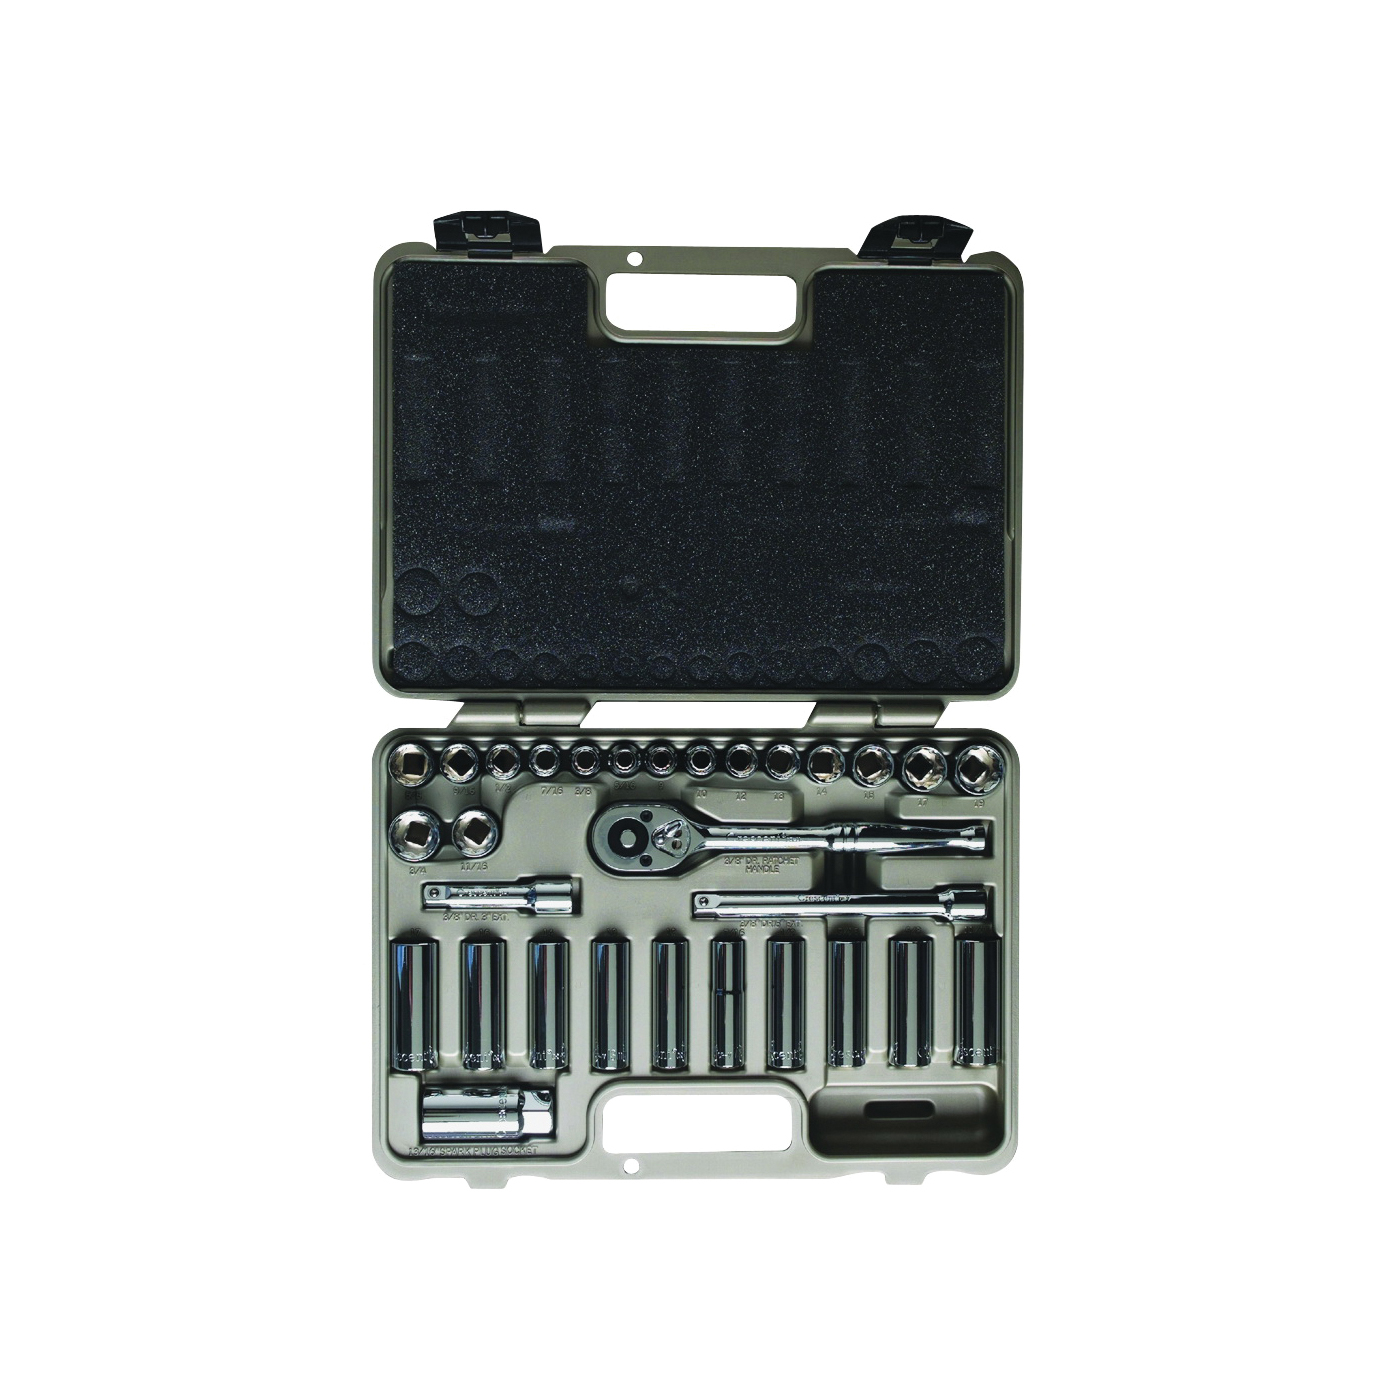 Picture of Crescent Pro Series CTK30SET Socket Set, Chrome Vanadium Steel, Chrome, Specifications: 3/8 in Drive Size